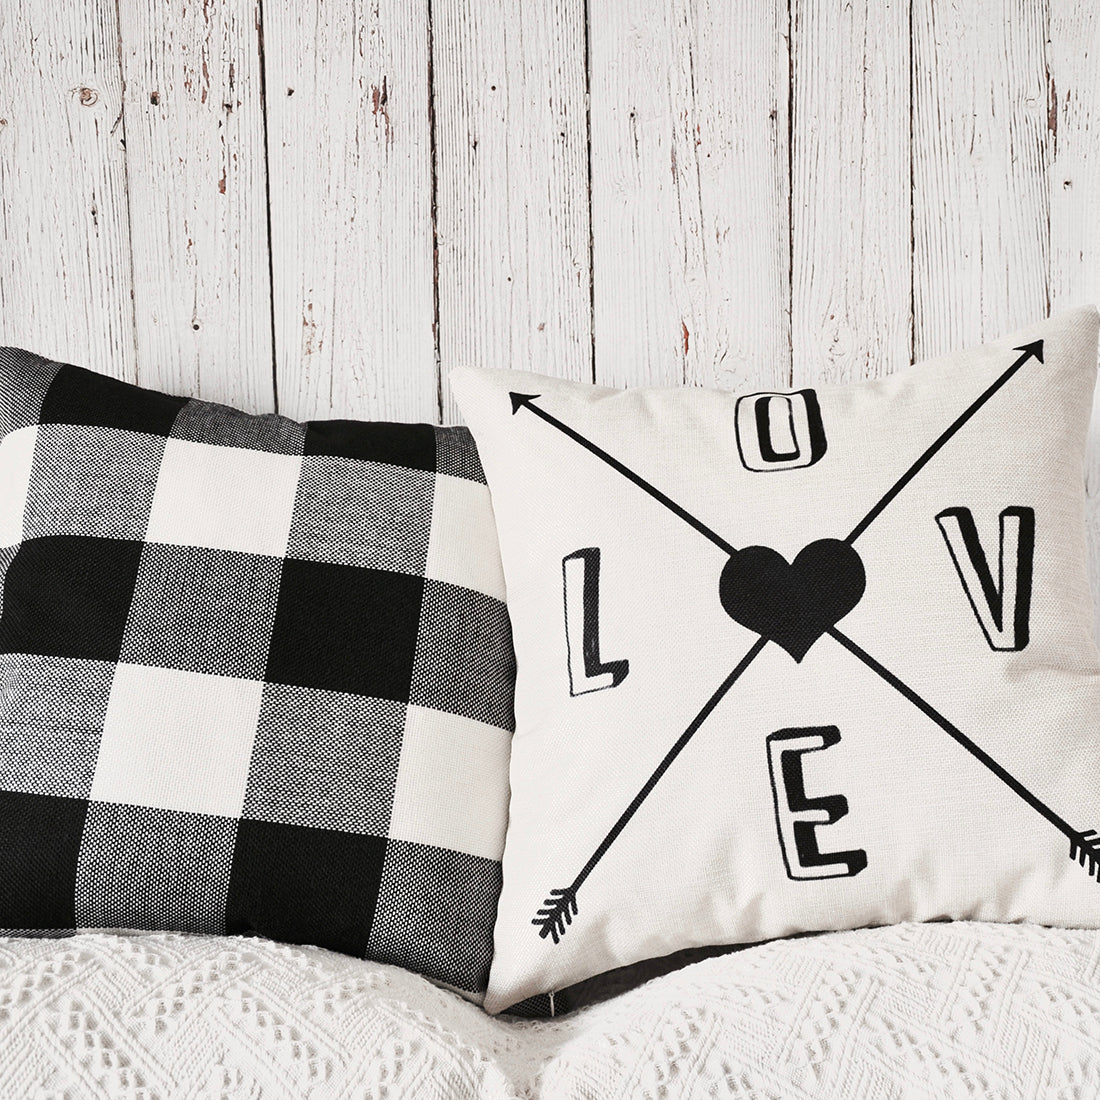 PANDICORN Set of 2 Farmhouse Decorative Throw Pillow Covers, Rustic Linen Throw Pillow Cases with Inspirational Words Love Arrow Heart, Black and White Buffalo Check Pillowcases for Sofa, 18x18 Inch